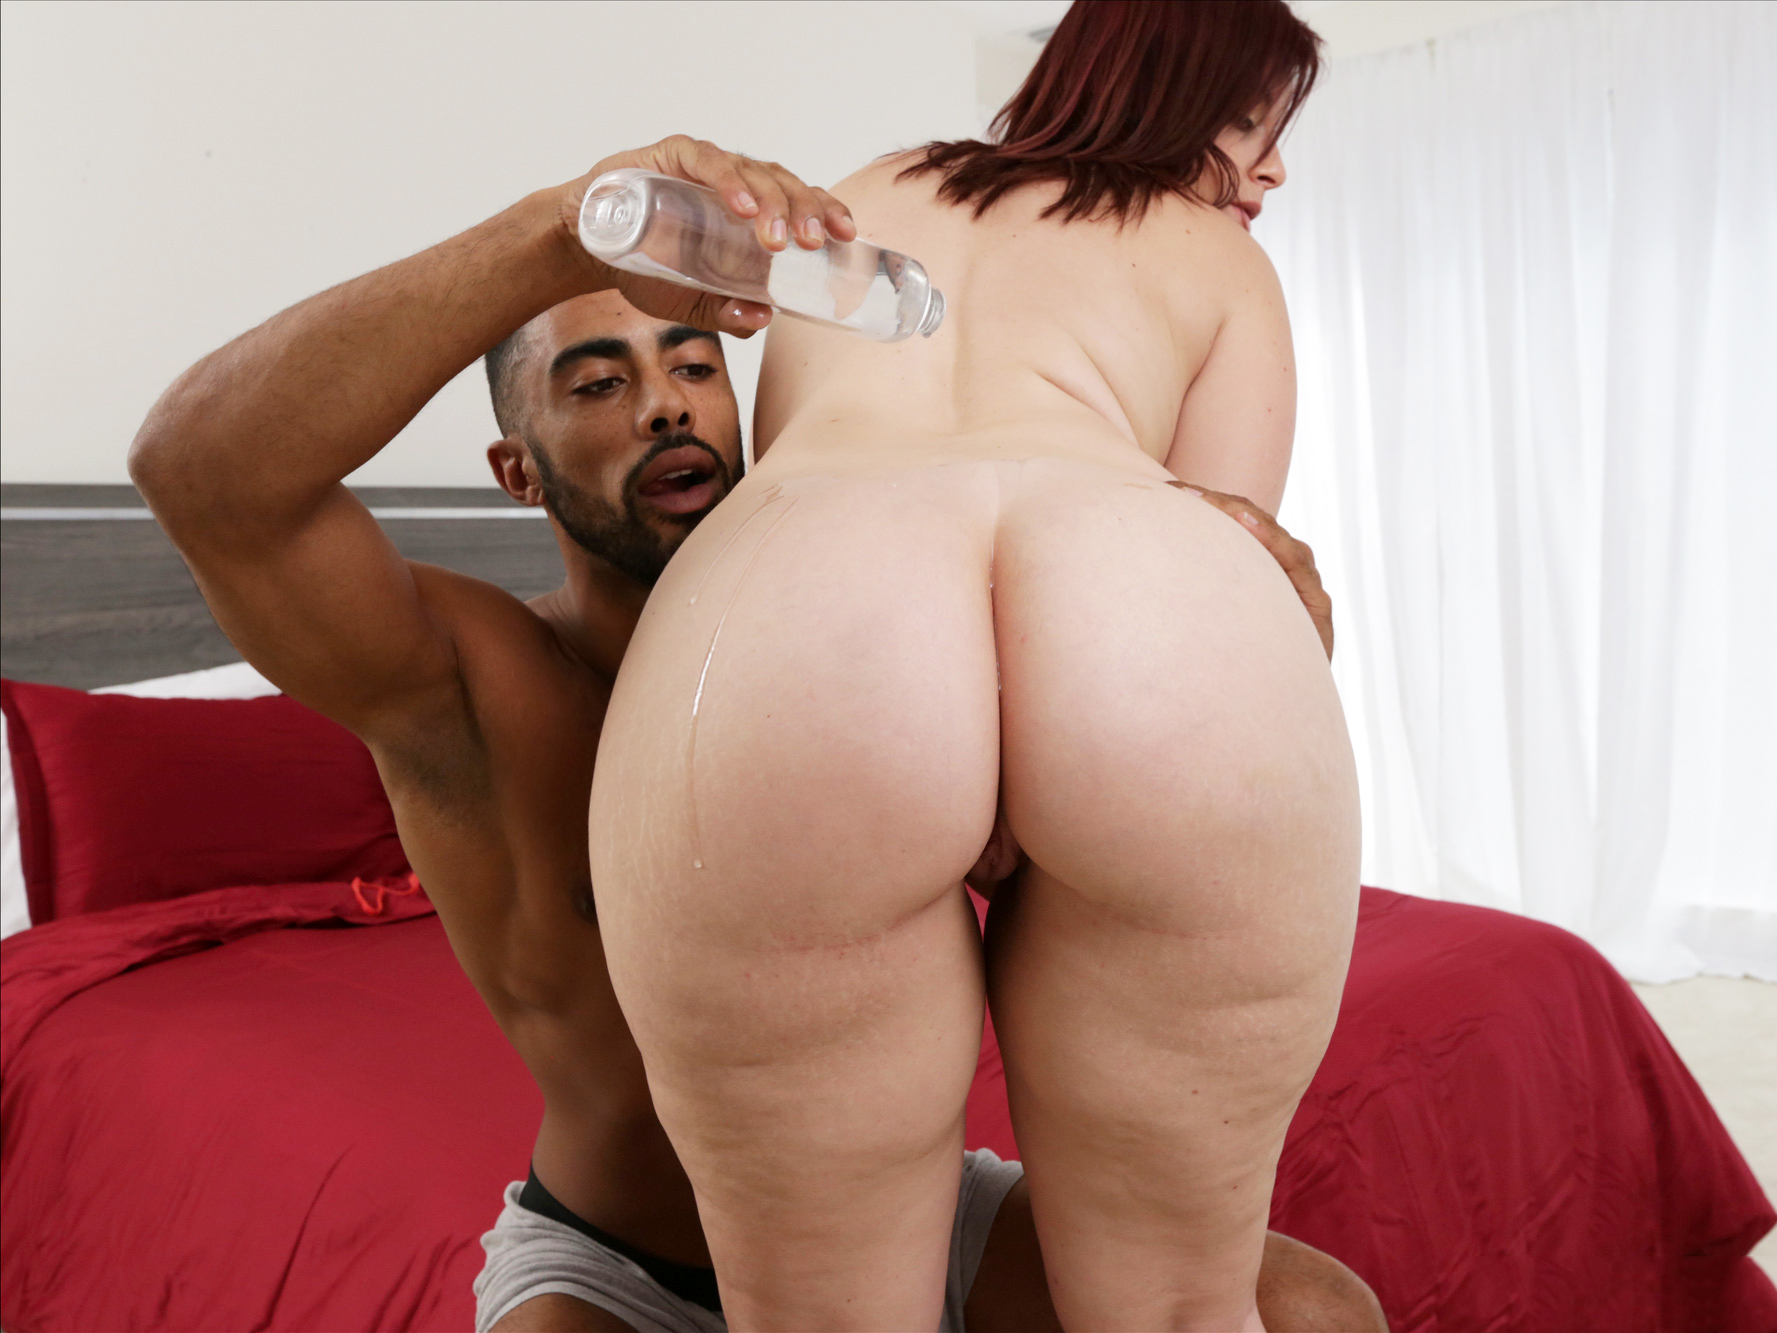 Analfucking Videos virgo peridot is back for some anal fucking